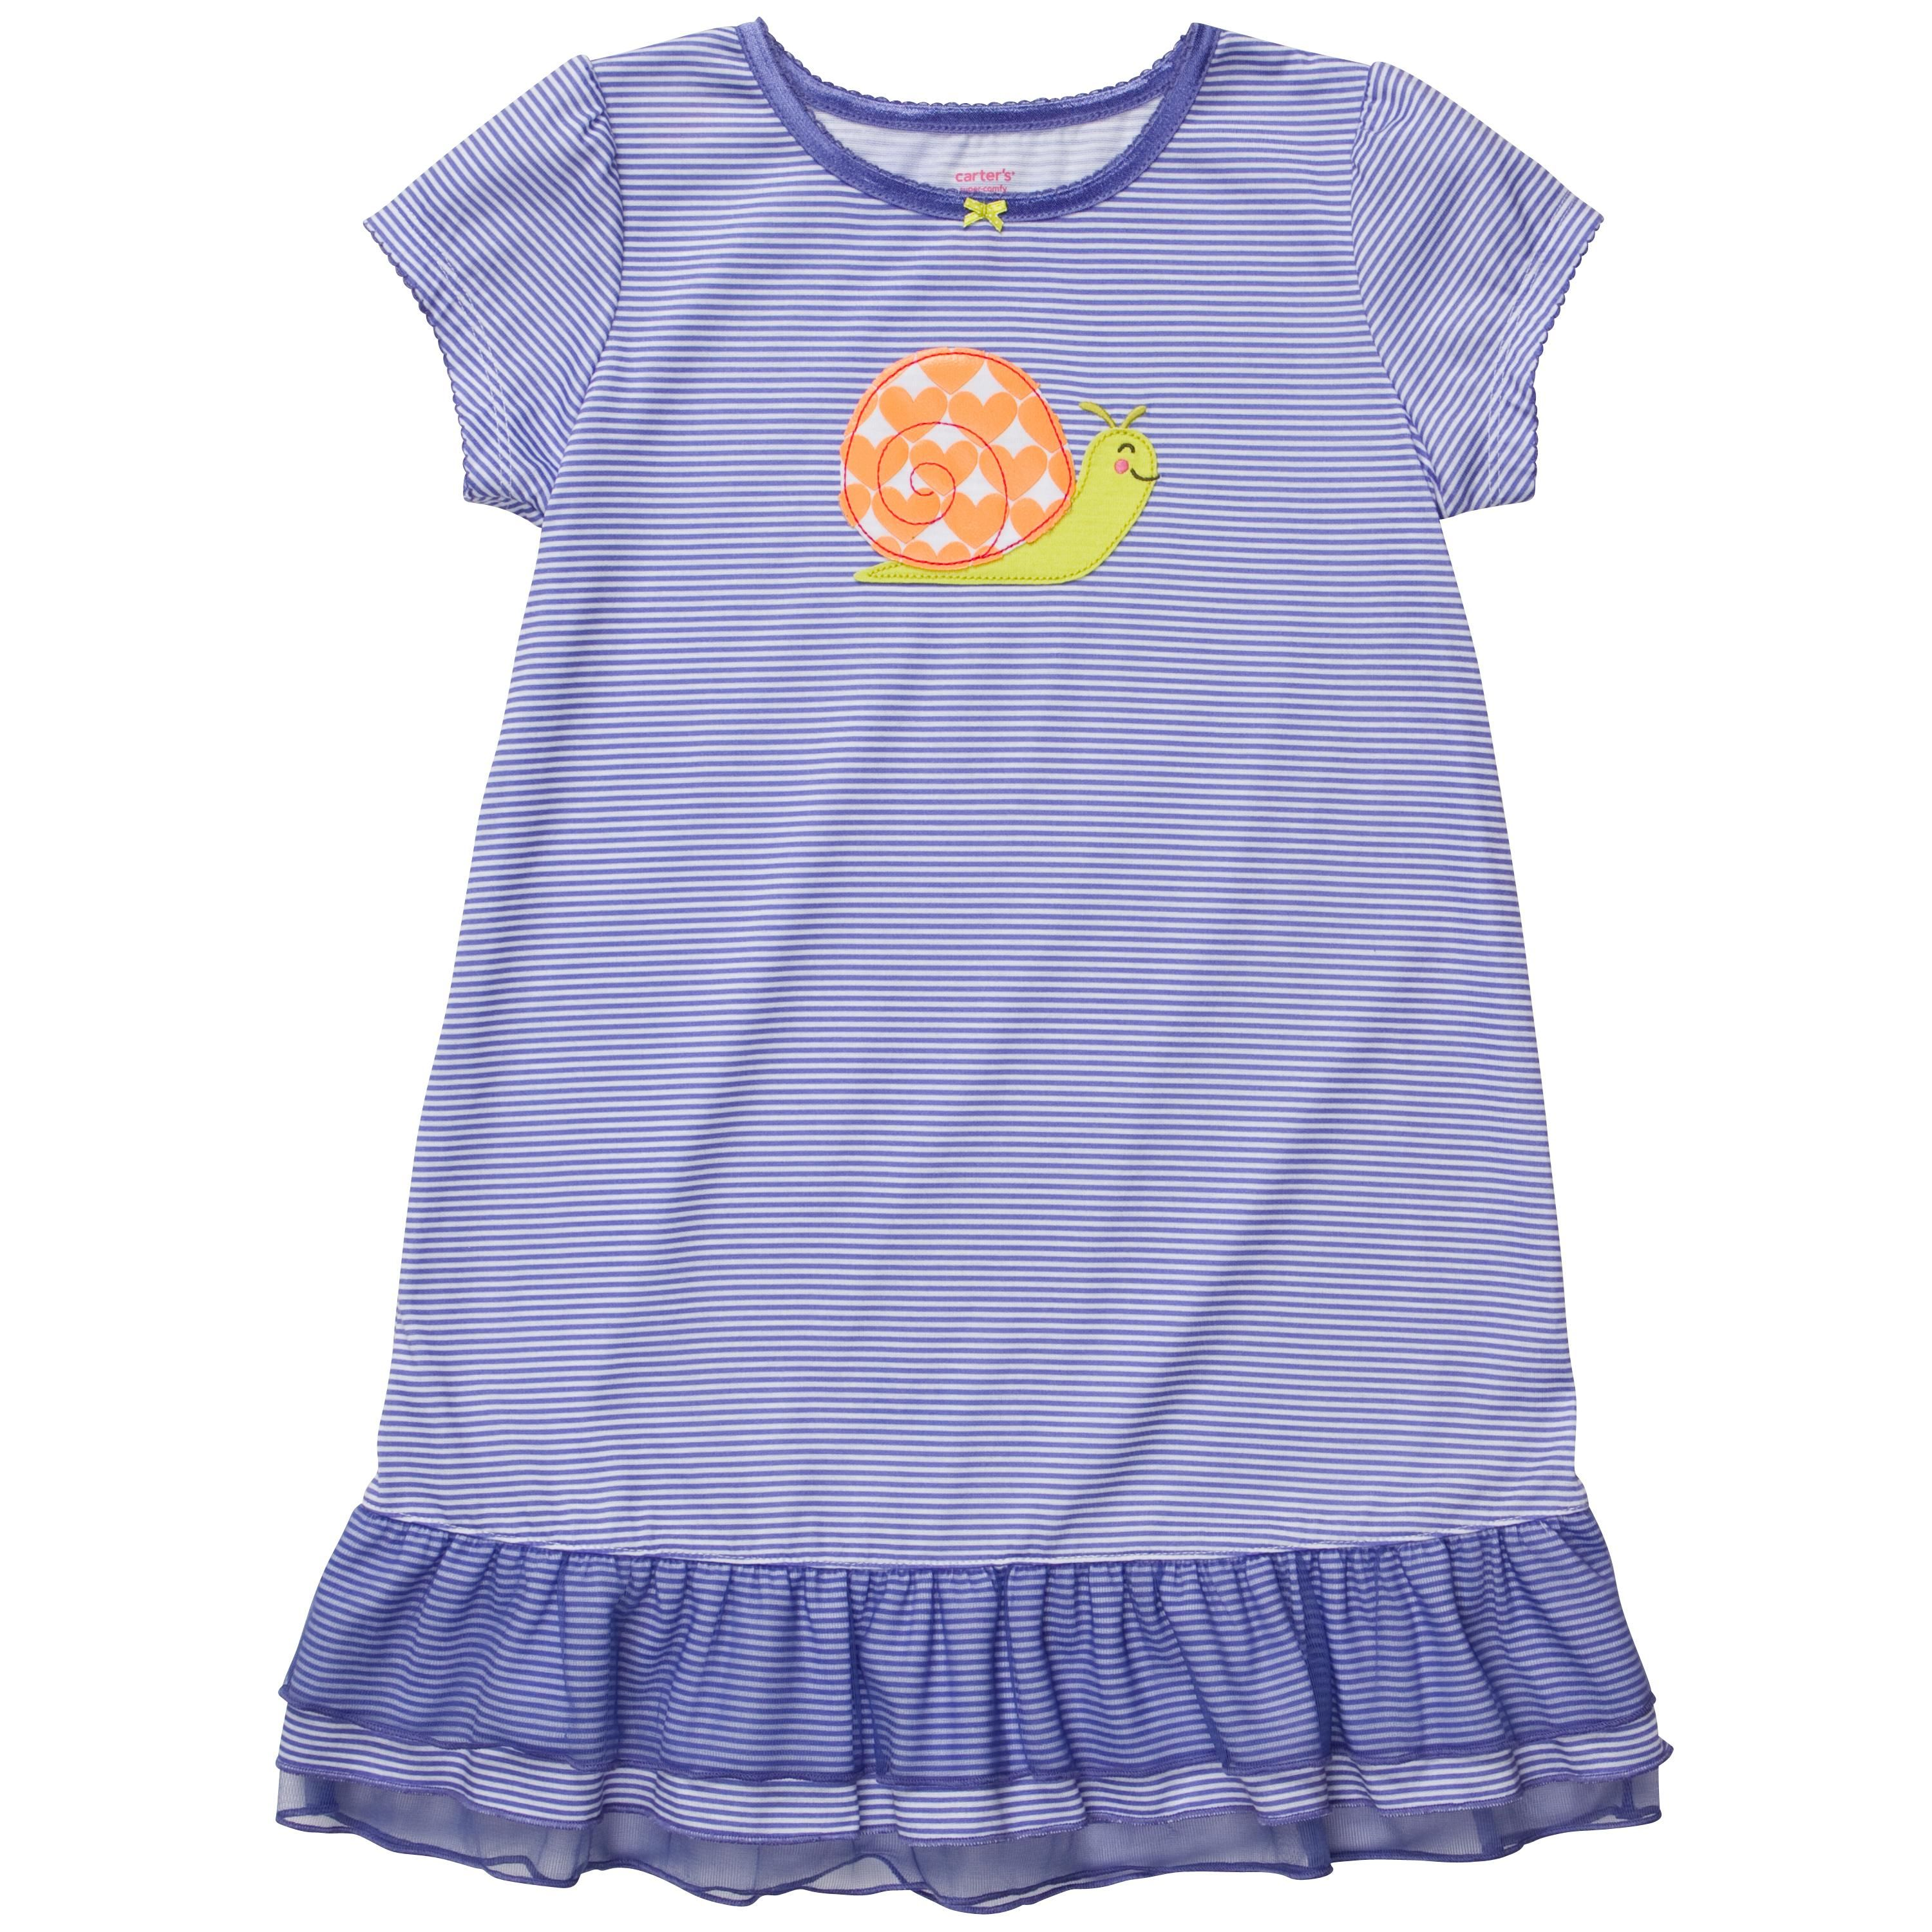 Gorgeous carters nightie almost too good just for bed little